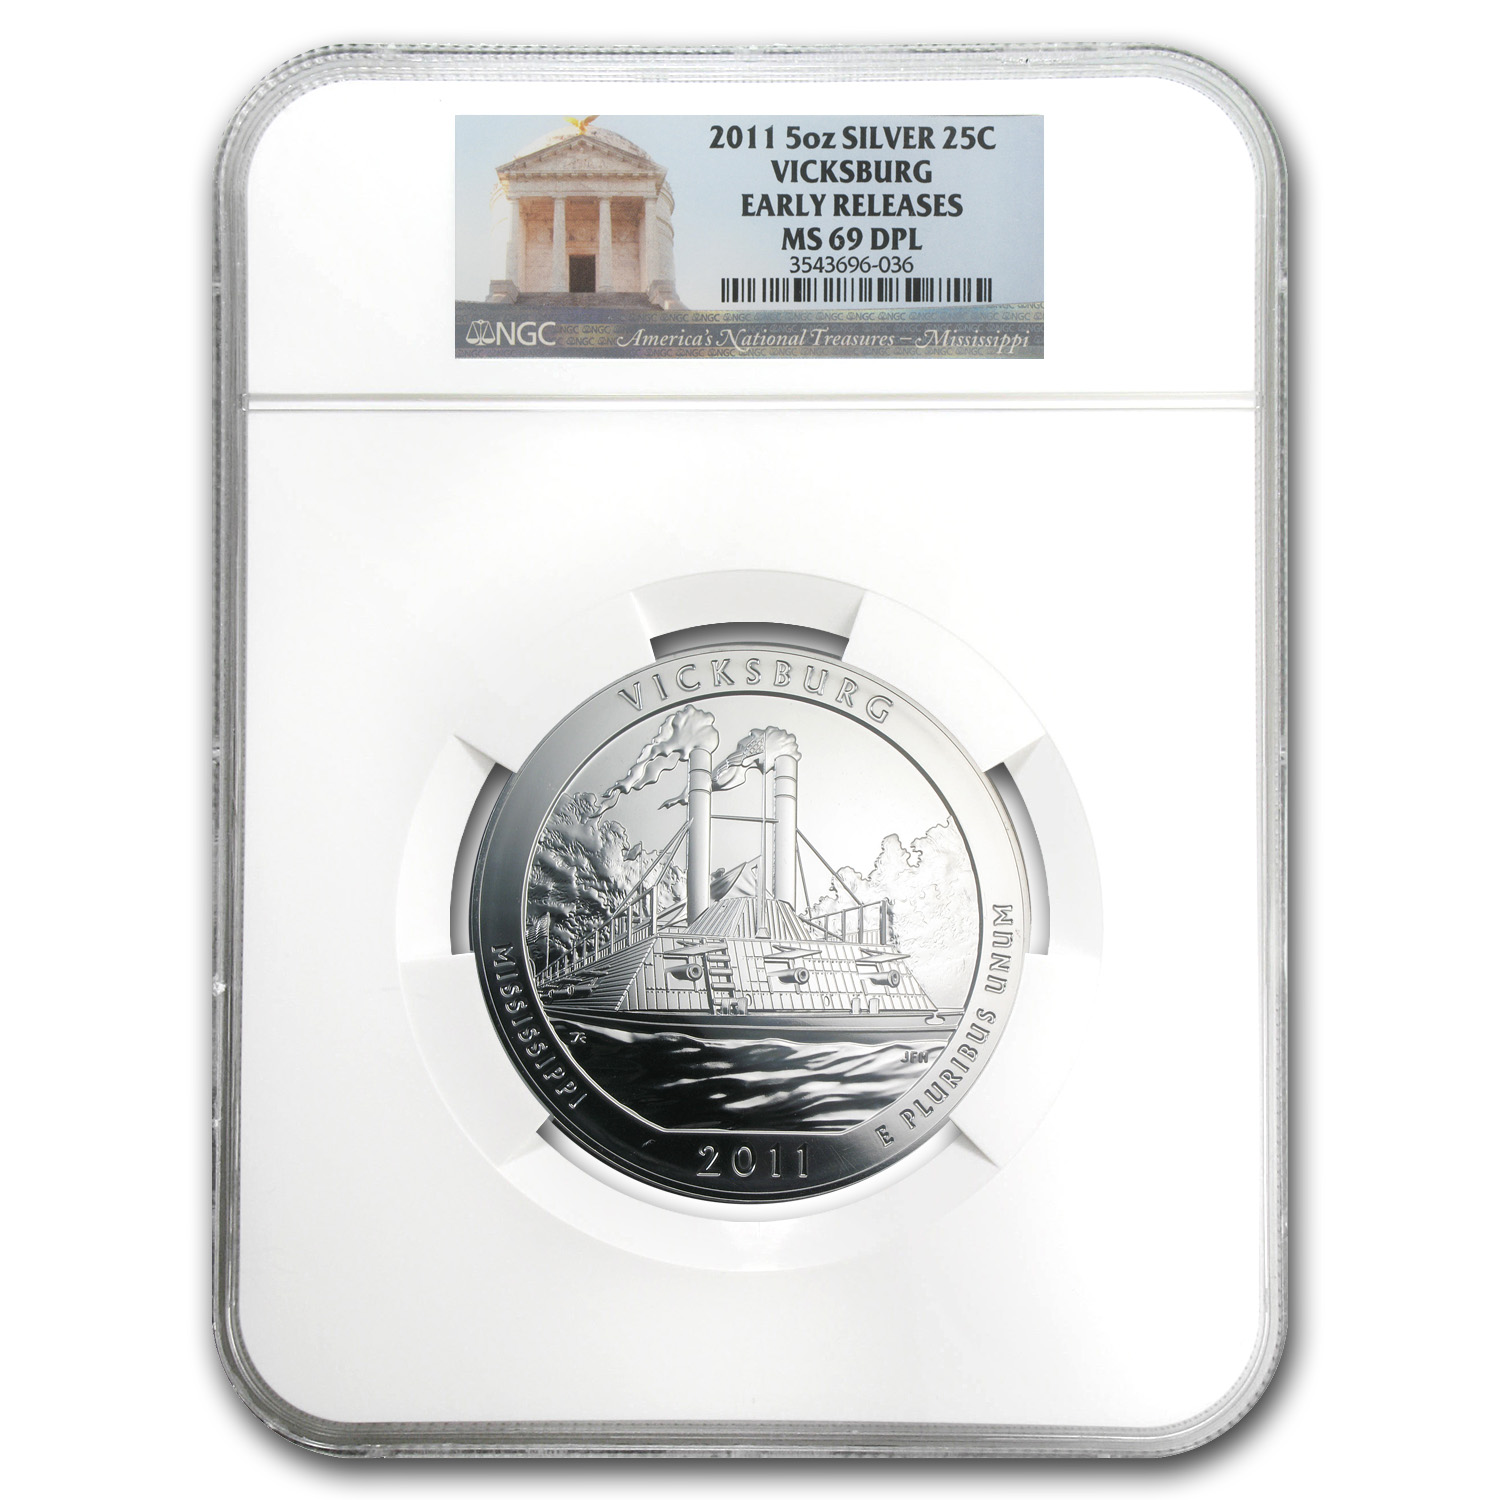 2011 5 oz Silver ATB Vicksburg MS-69 DPL Early Release NGC